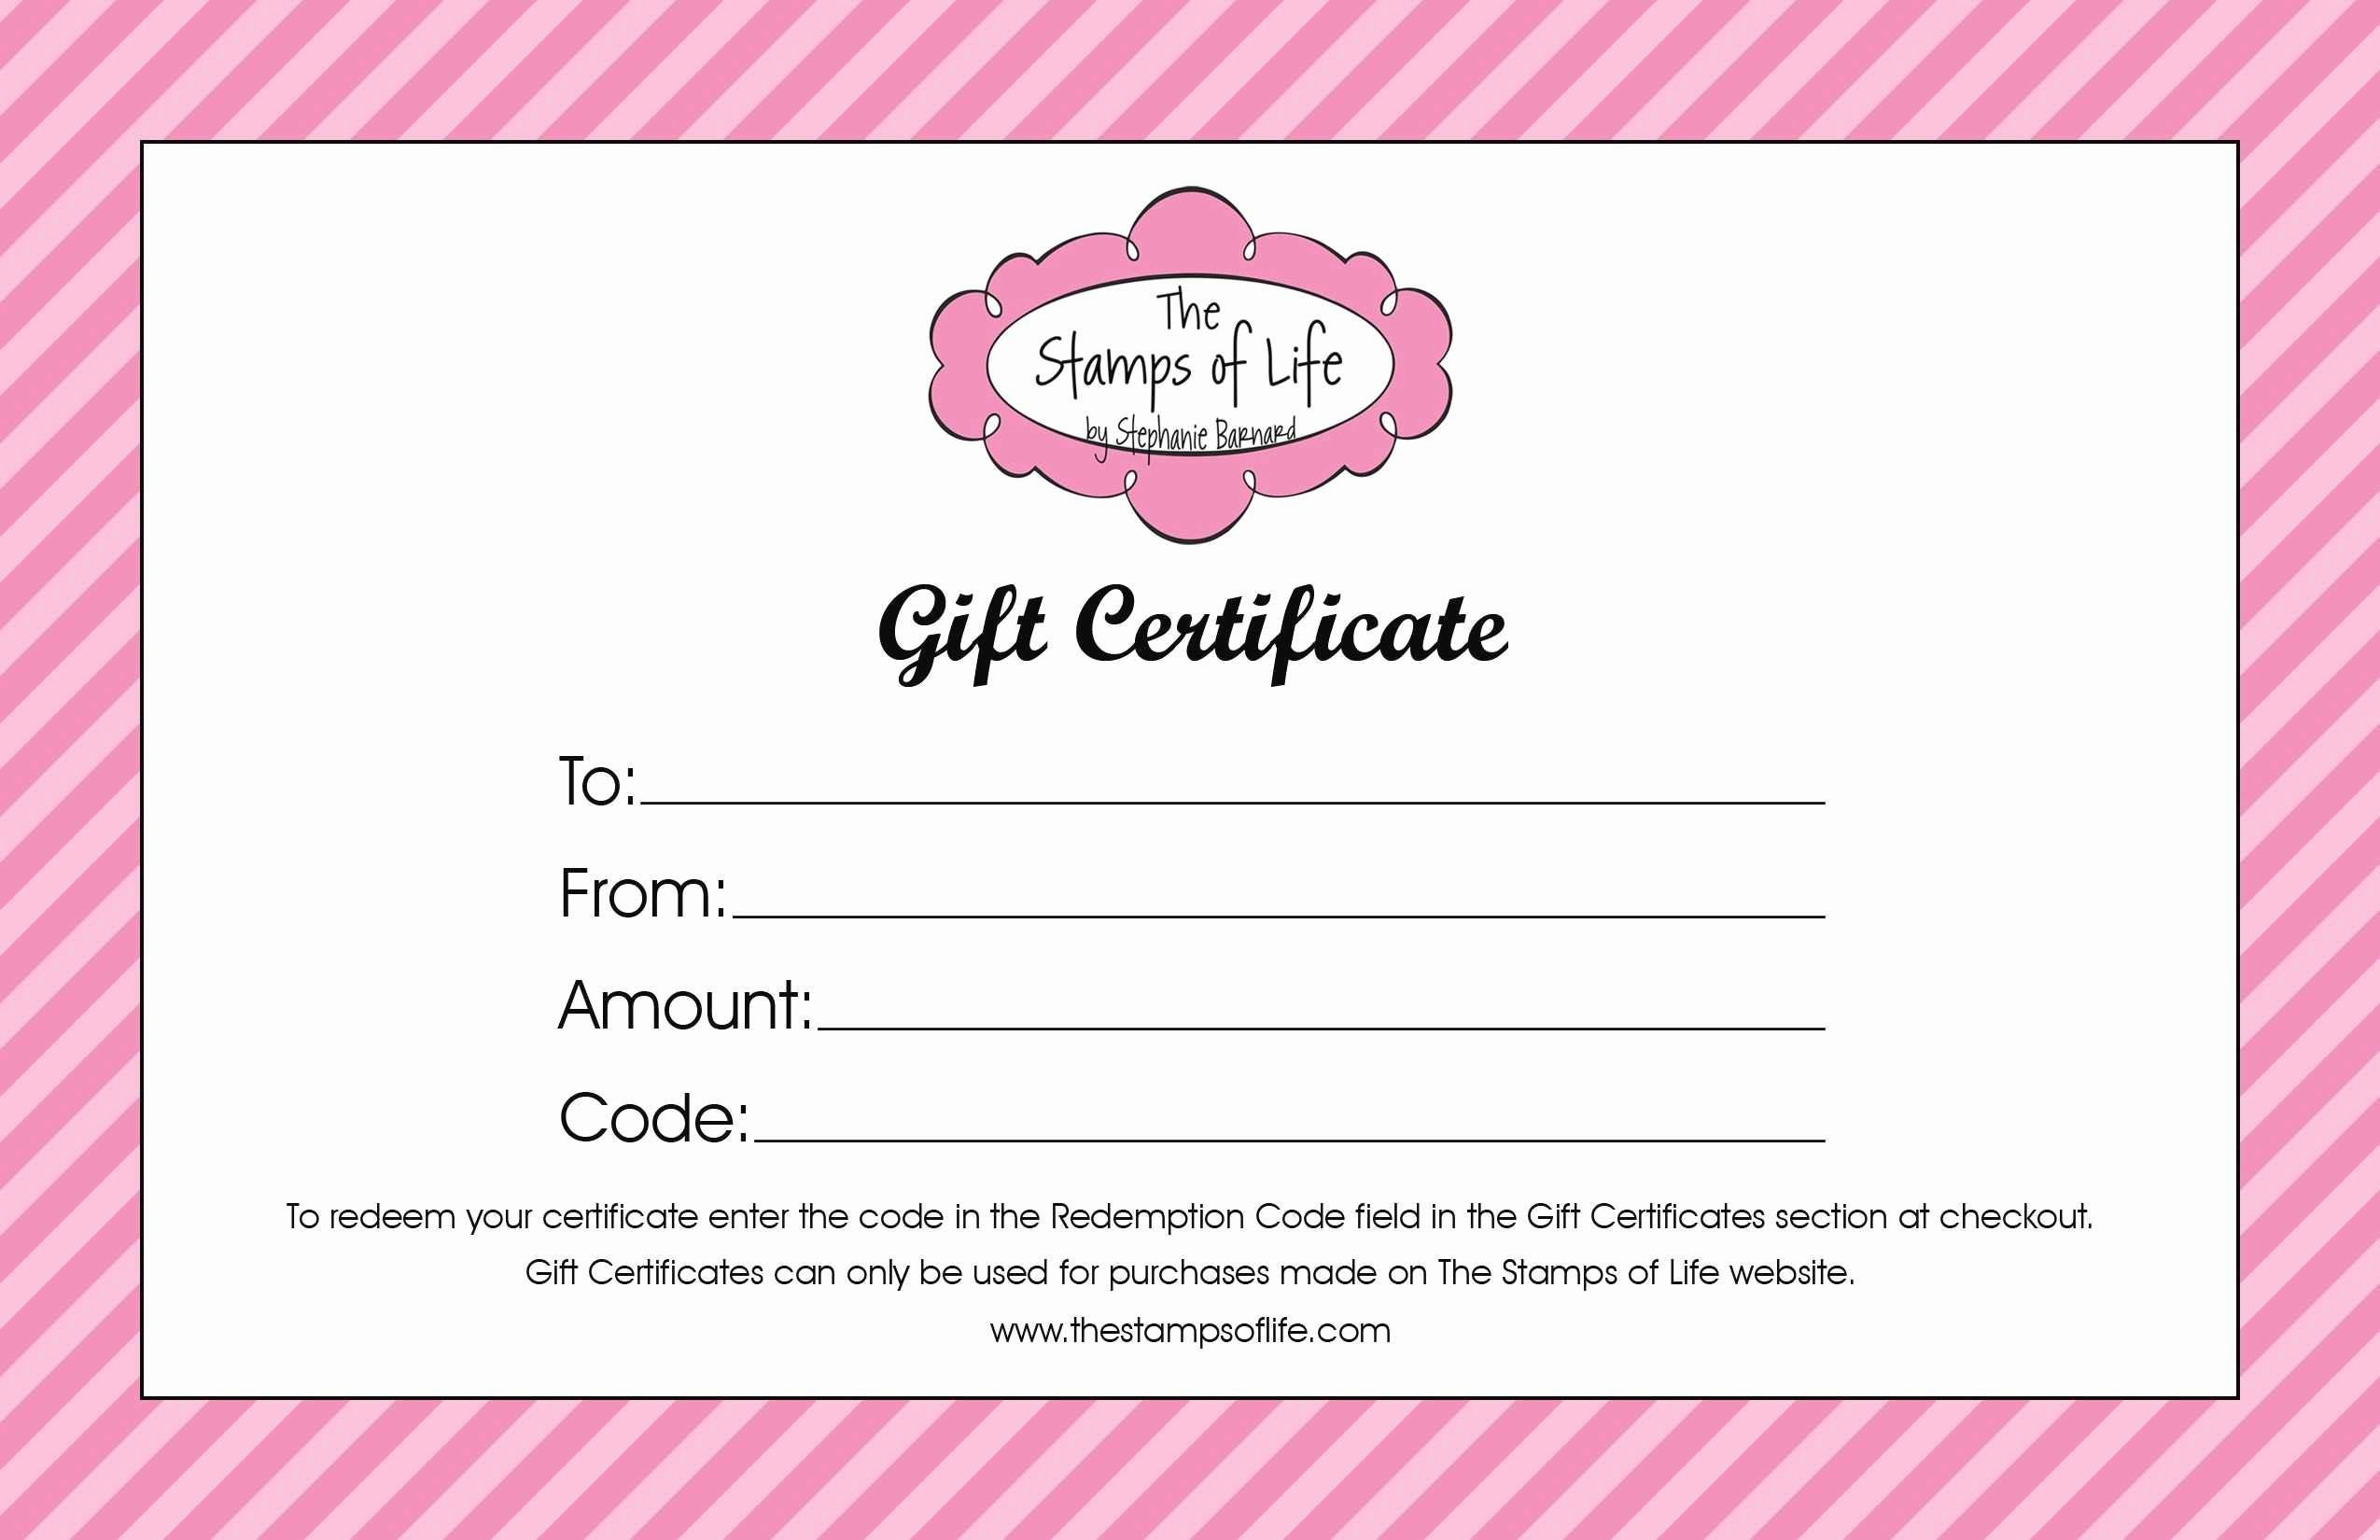 Restaurant Gift Certificate Template Awesome Best Printable Restaurant Gift Certificate Template